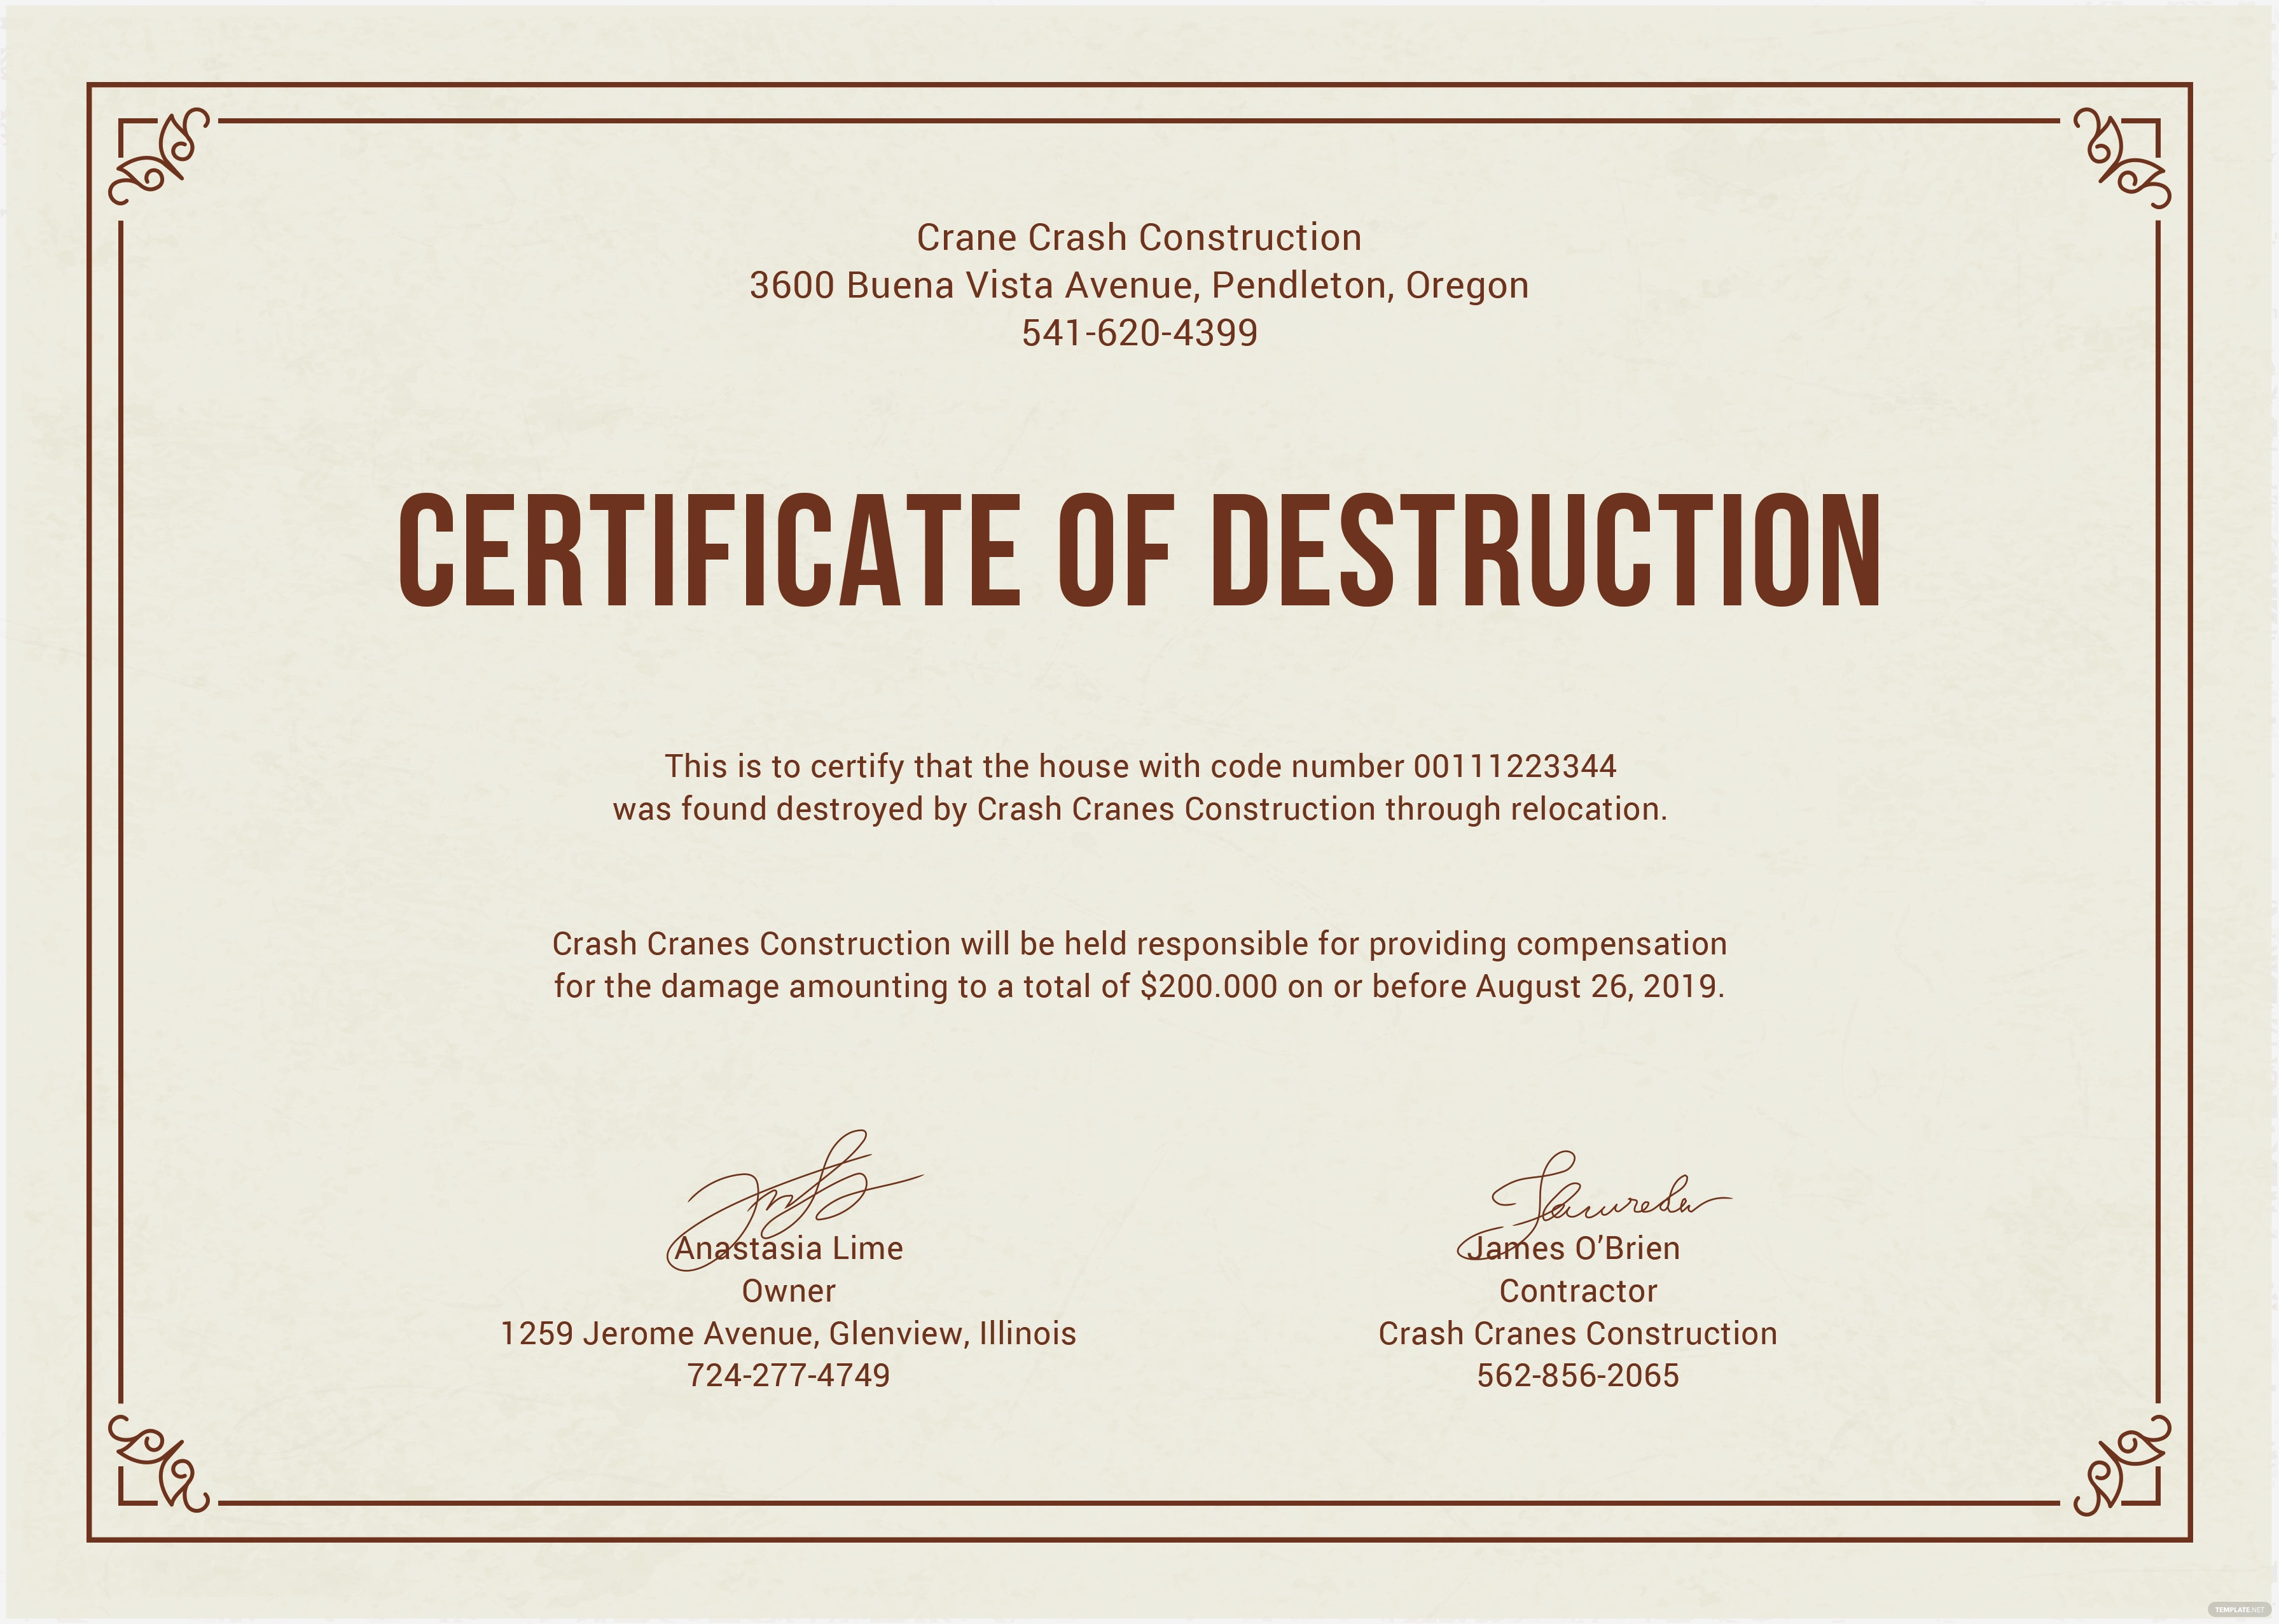 Free certificate of destruction template in adobe for Certificate of destruction template word